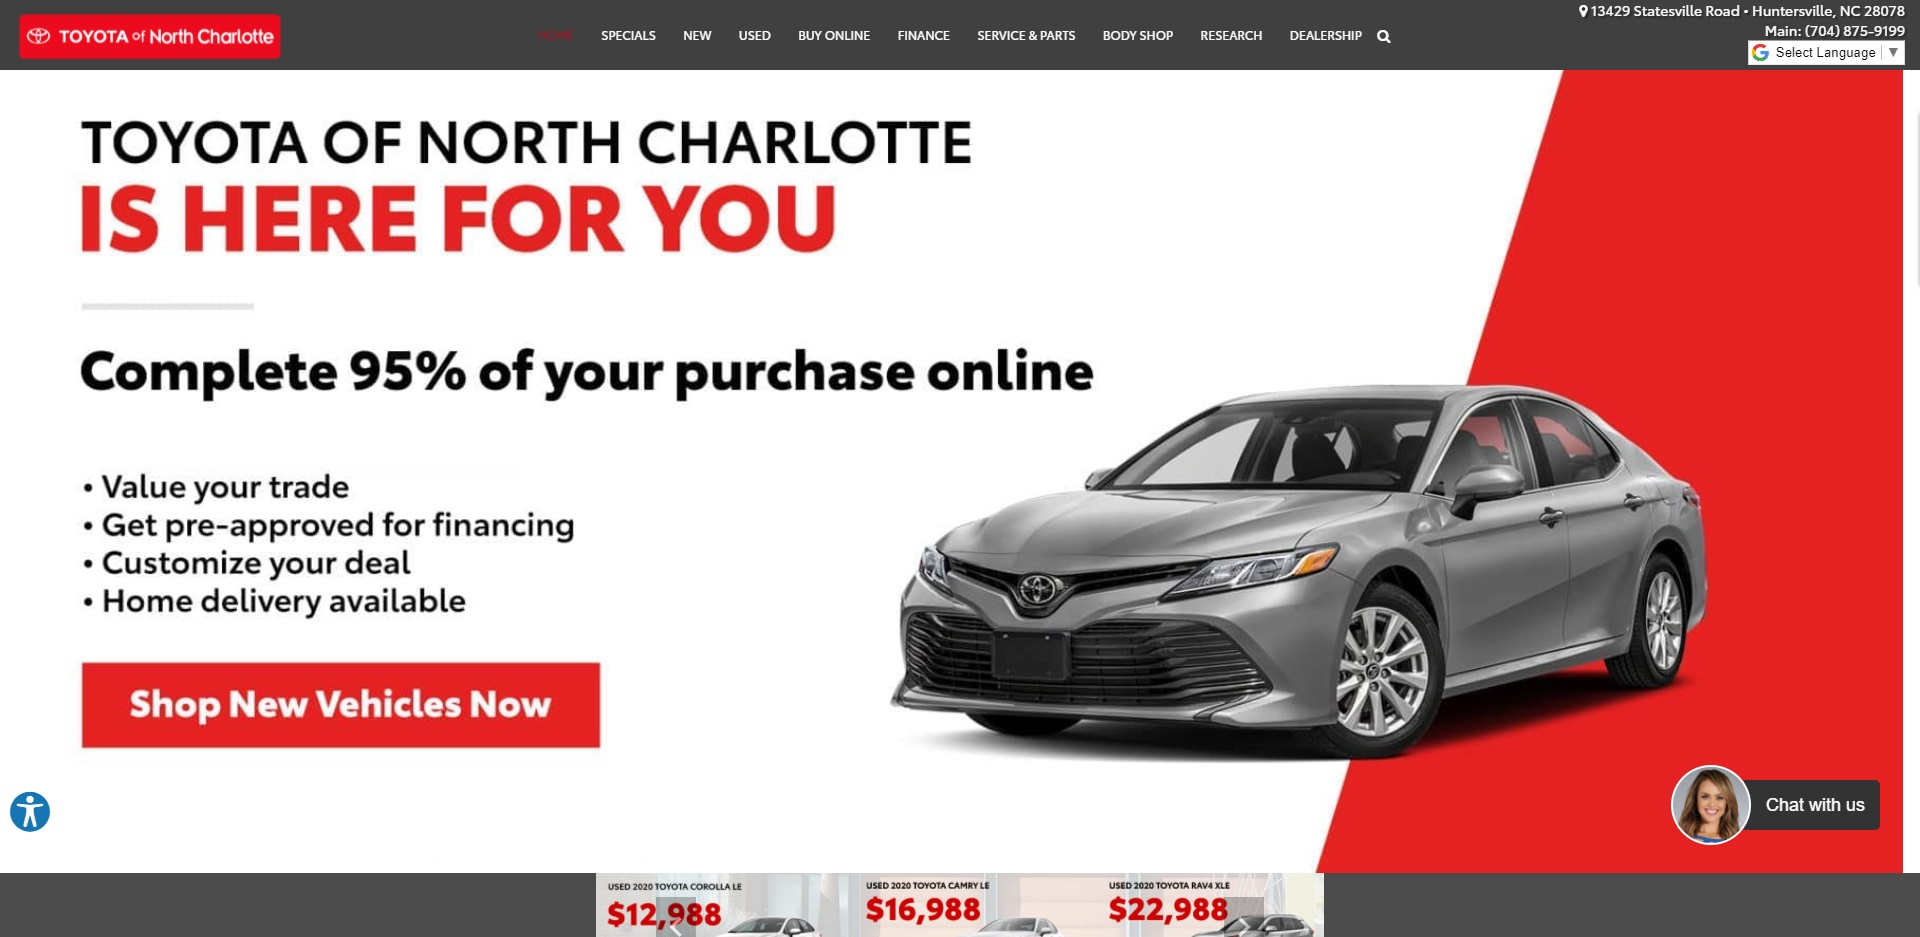 5 Best Toyota Dealers in Charlotte, NC